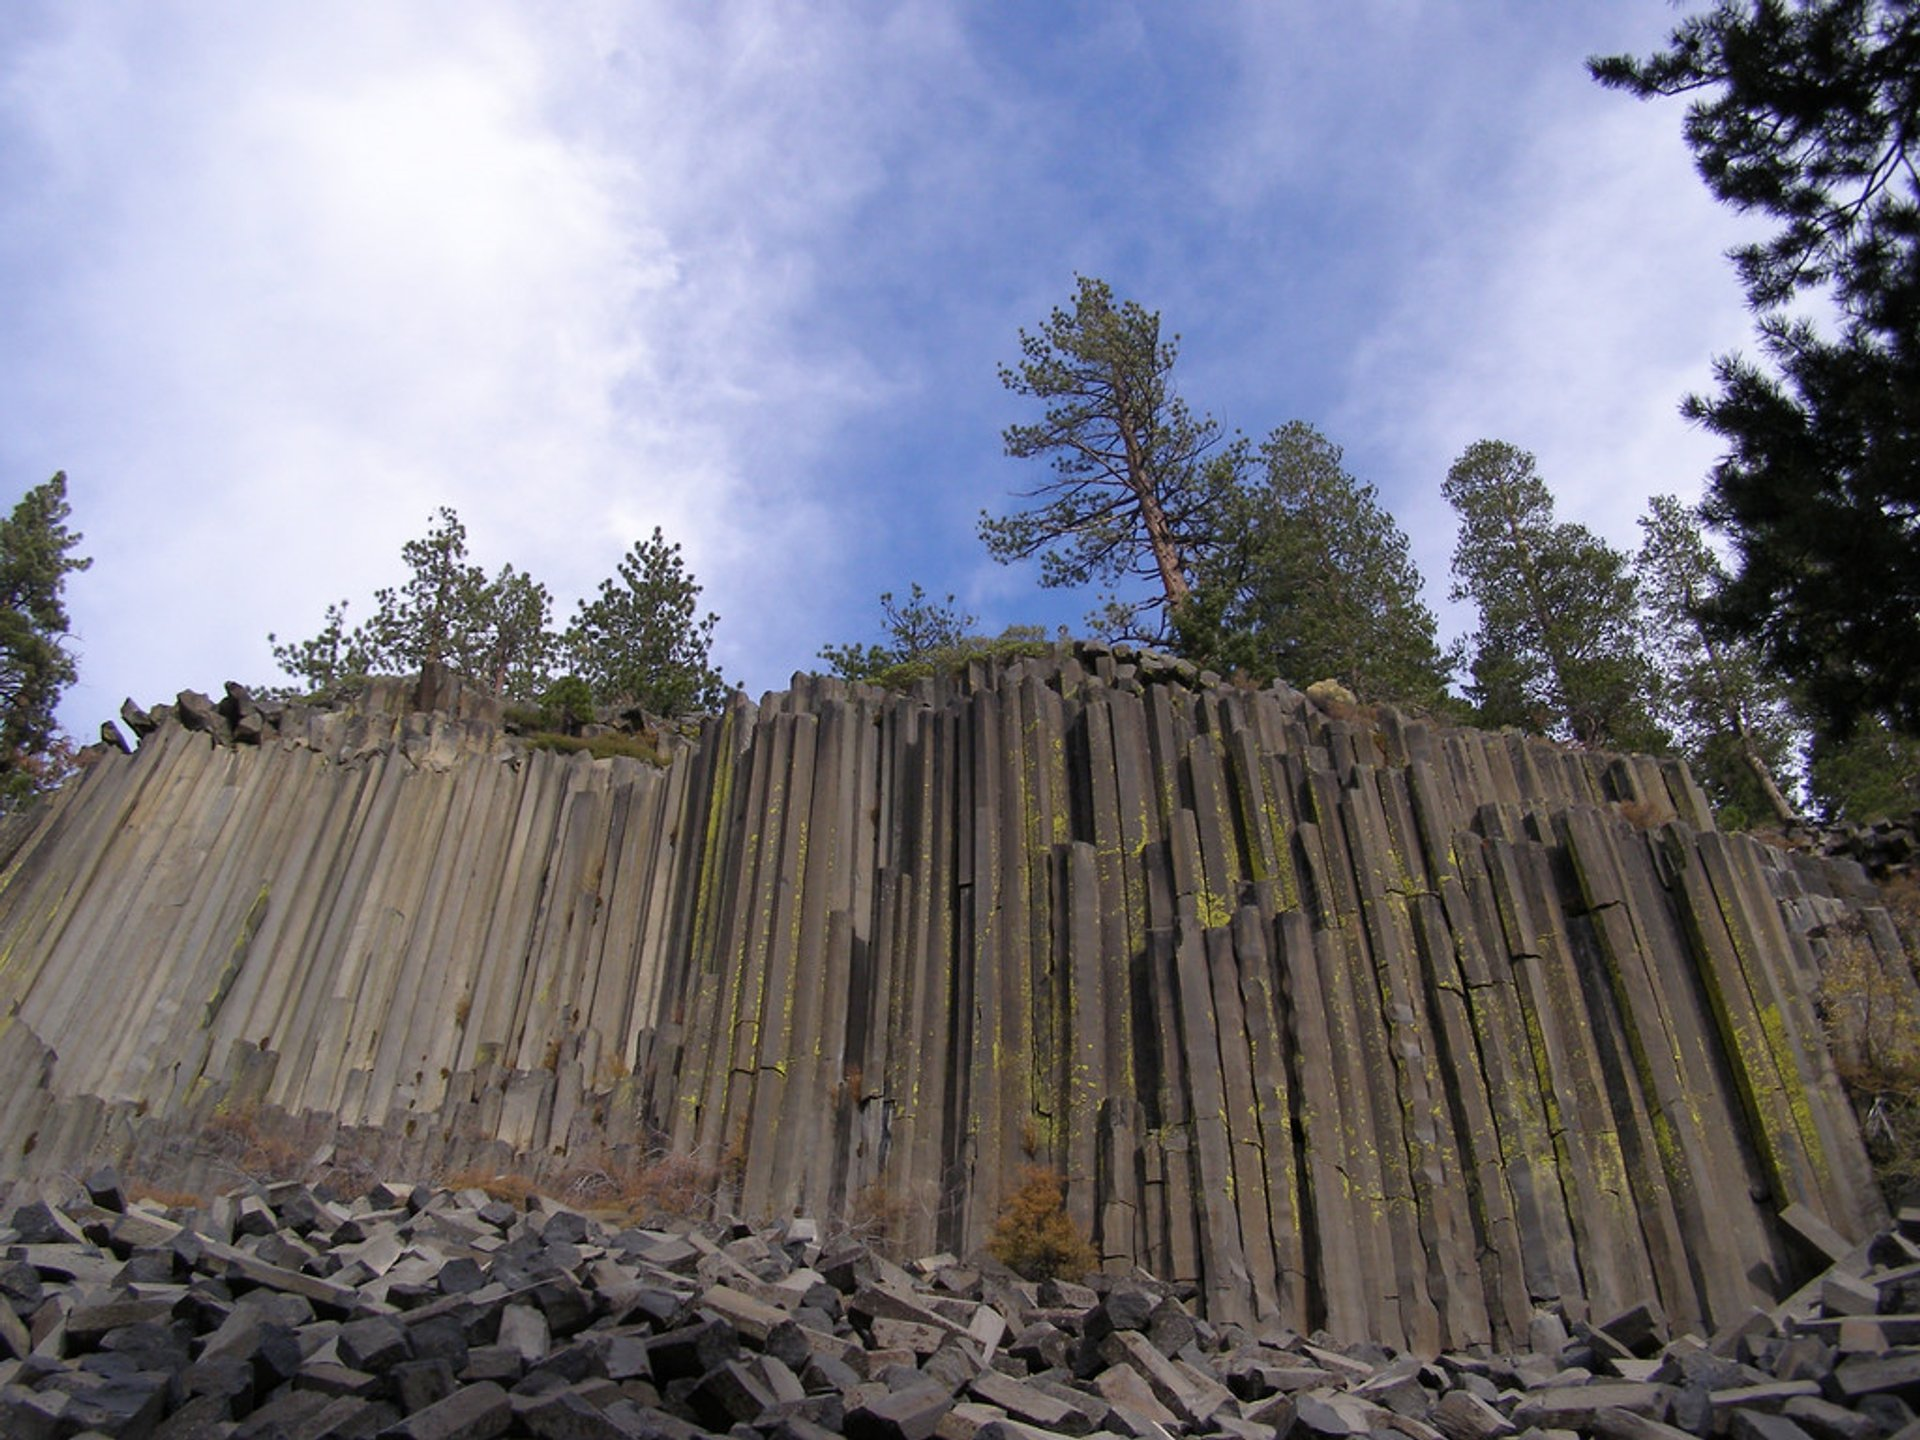 Devils Postpile National Monument in California 2020 - Best Time